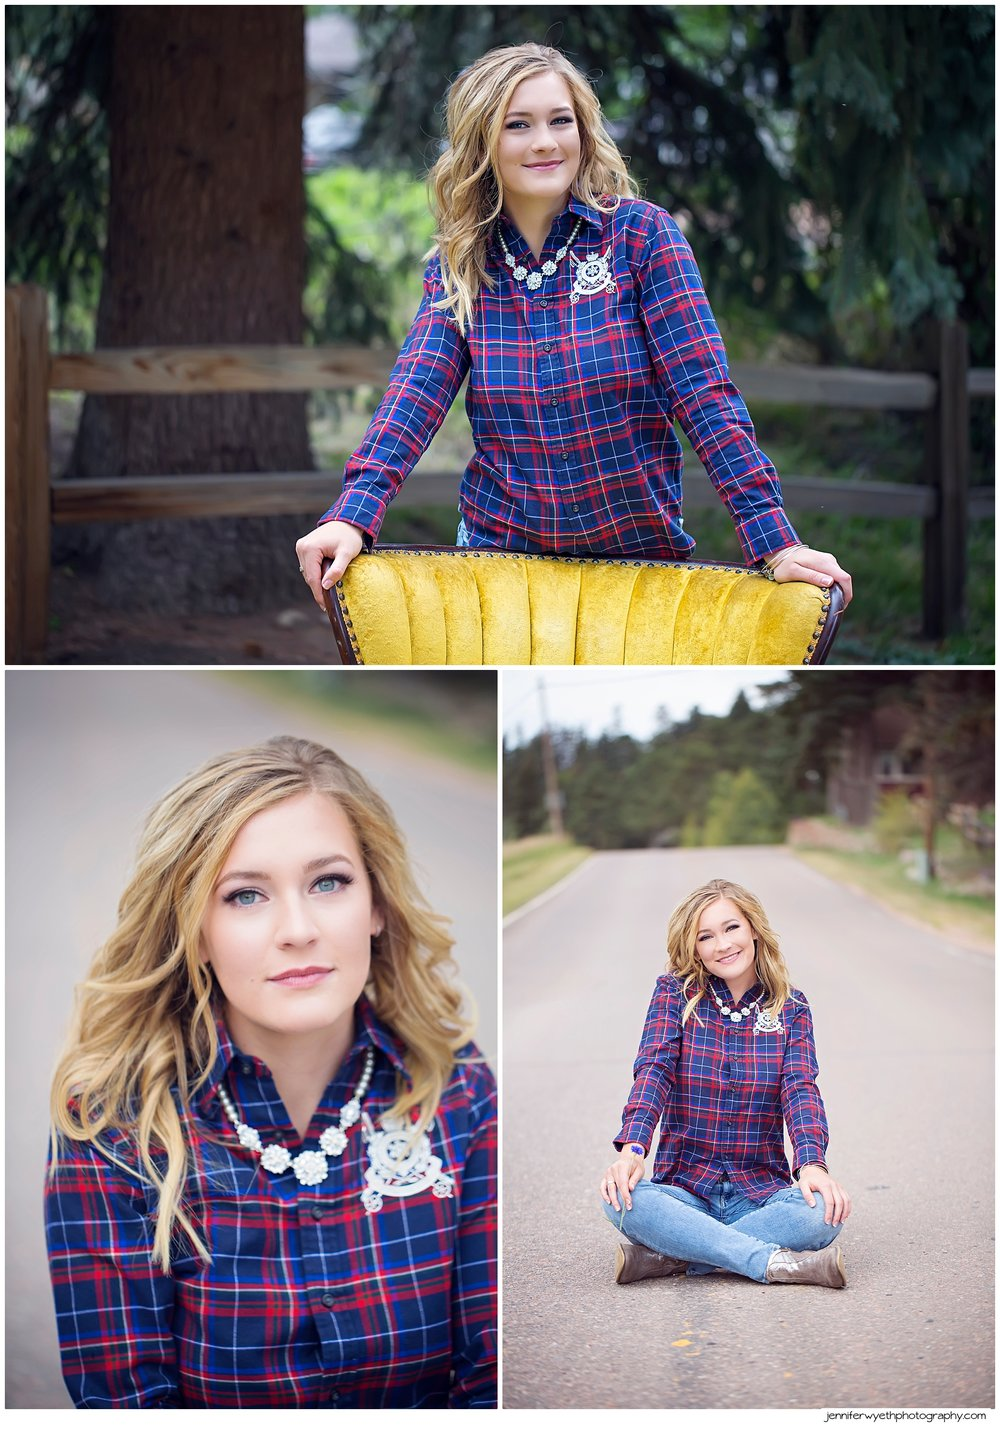 Jennifer-Wyeth-photography-senior-pictures-colorado-springs-photographer_0181.jpg